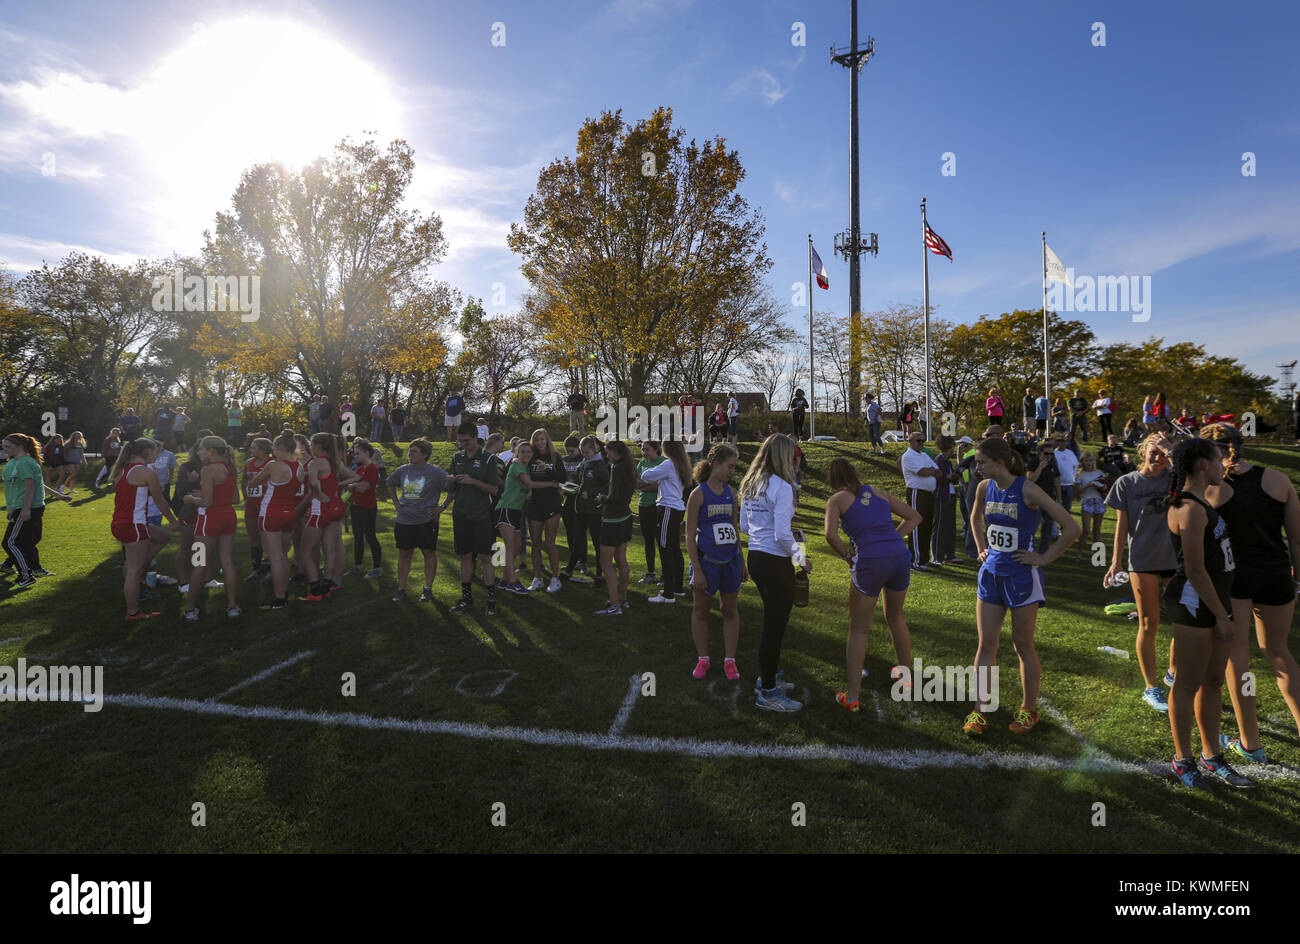 October 19, 2017 - Bettendorf, Iowa, U.S. - Runners stretch and get ready for their race during the 4A state cross - Stock Image